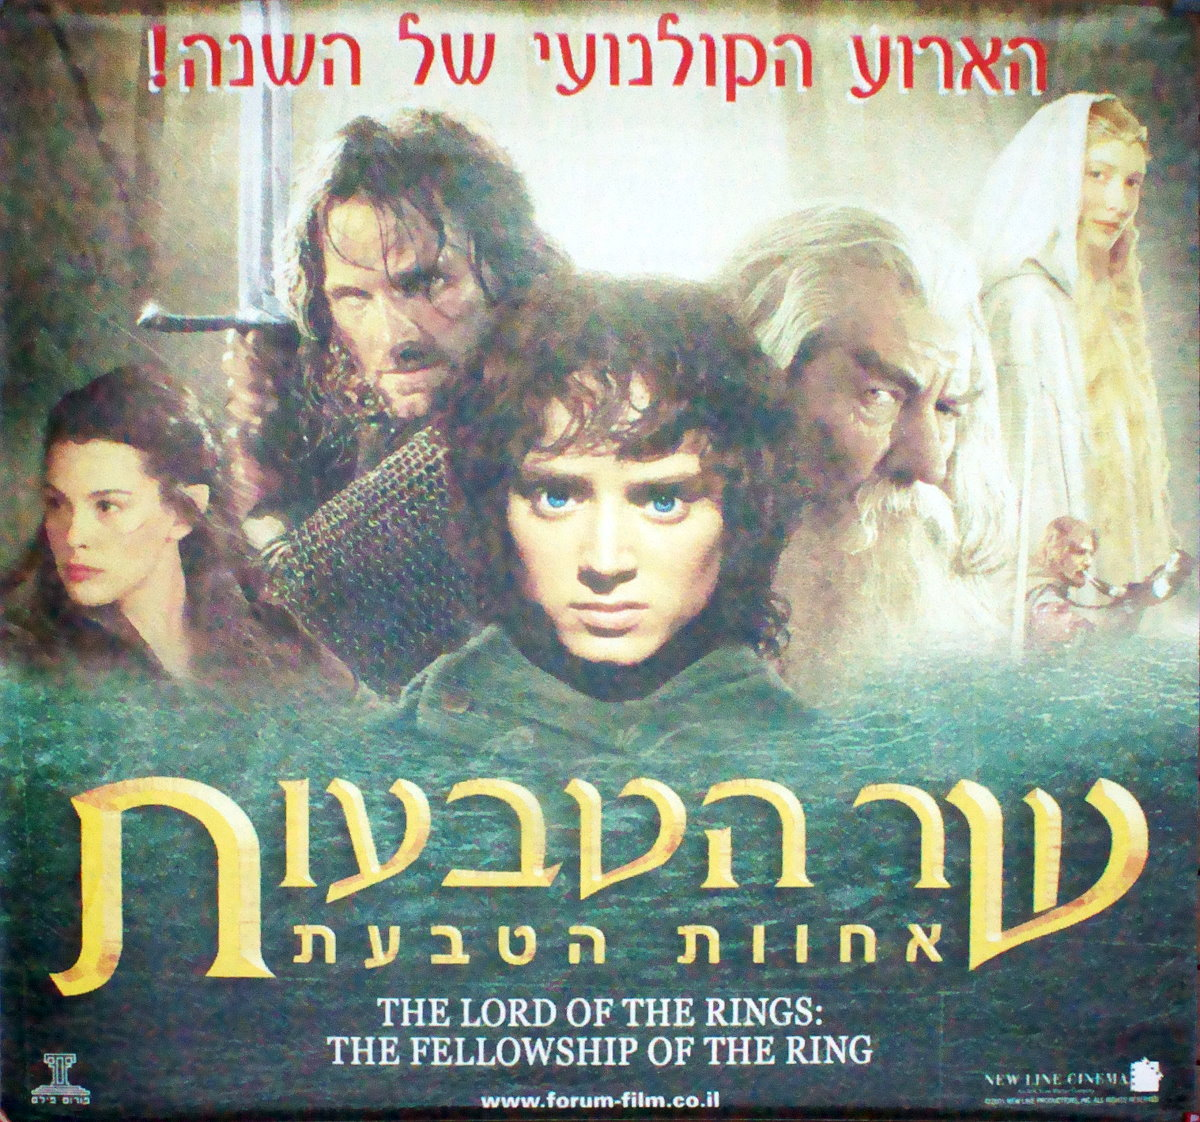 Httpwww Overlordsofchaos Comhtmlorigin Of The Word Jew Html: Lord Of The Rings – Hebrew Movie Poster